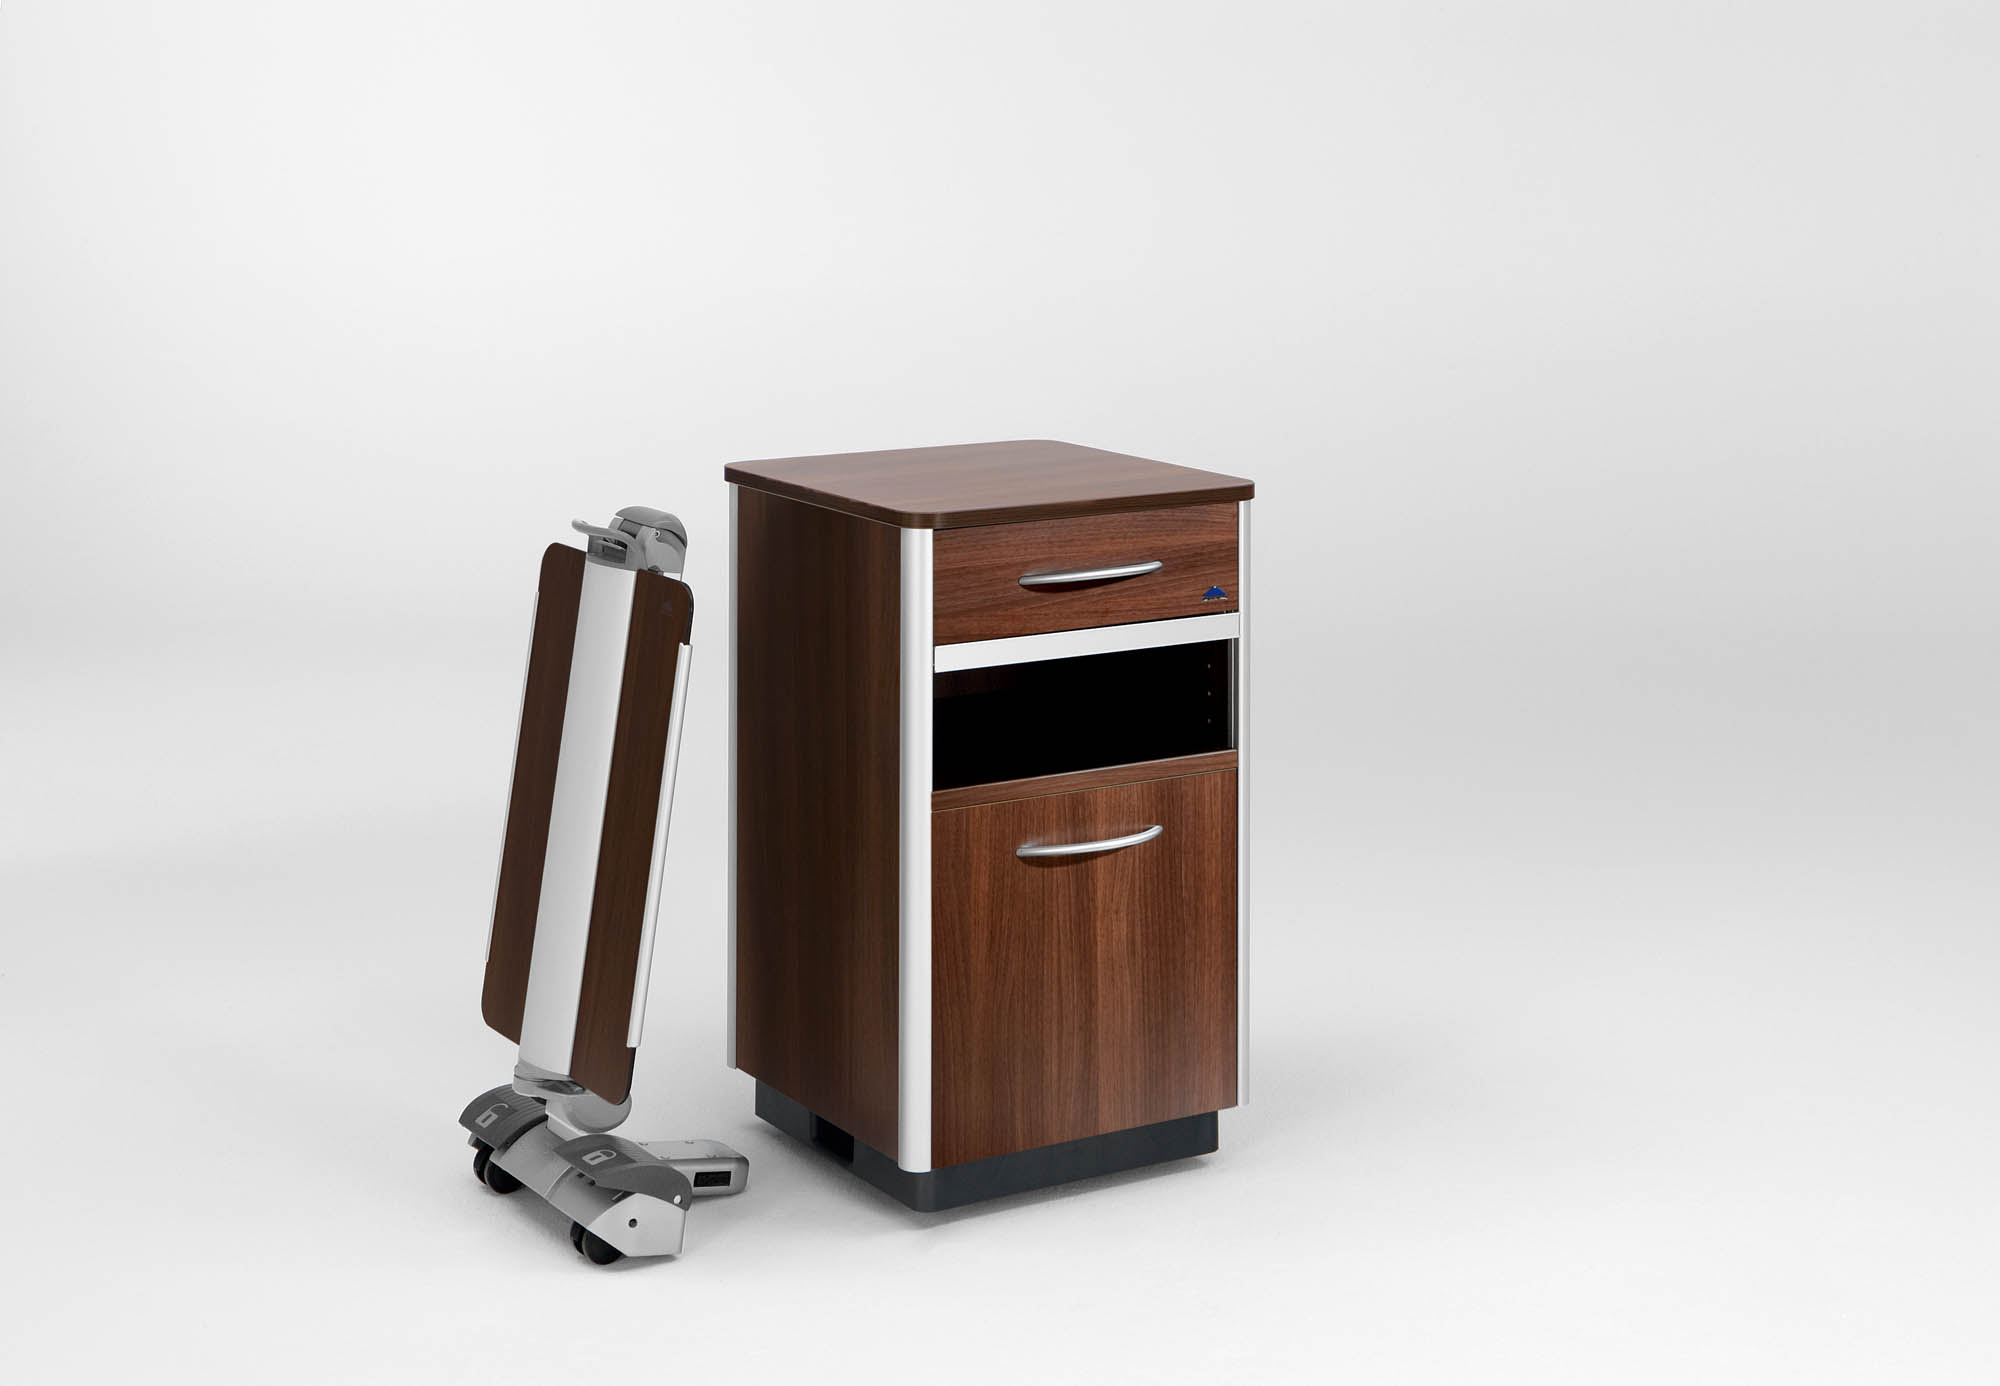 Optional overbed table on the Combino bedside cabinet